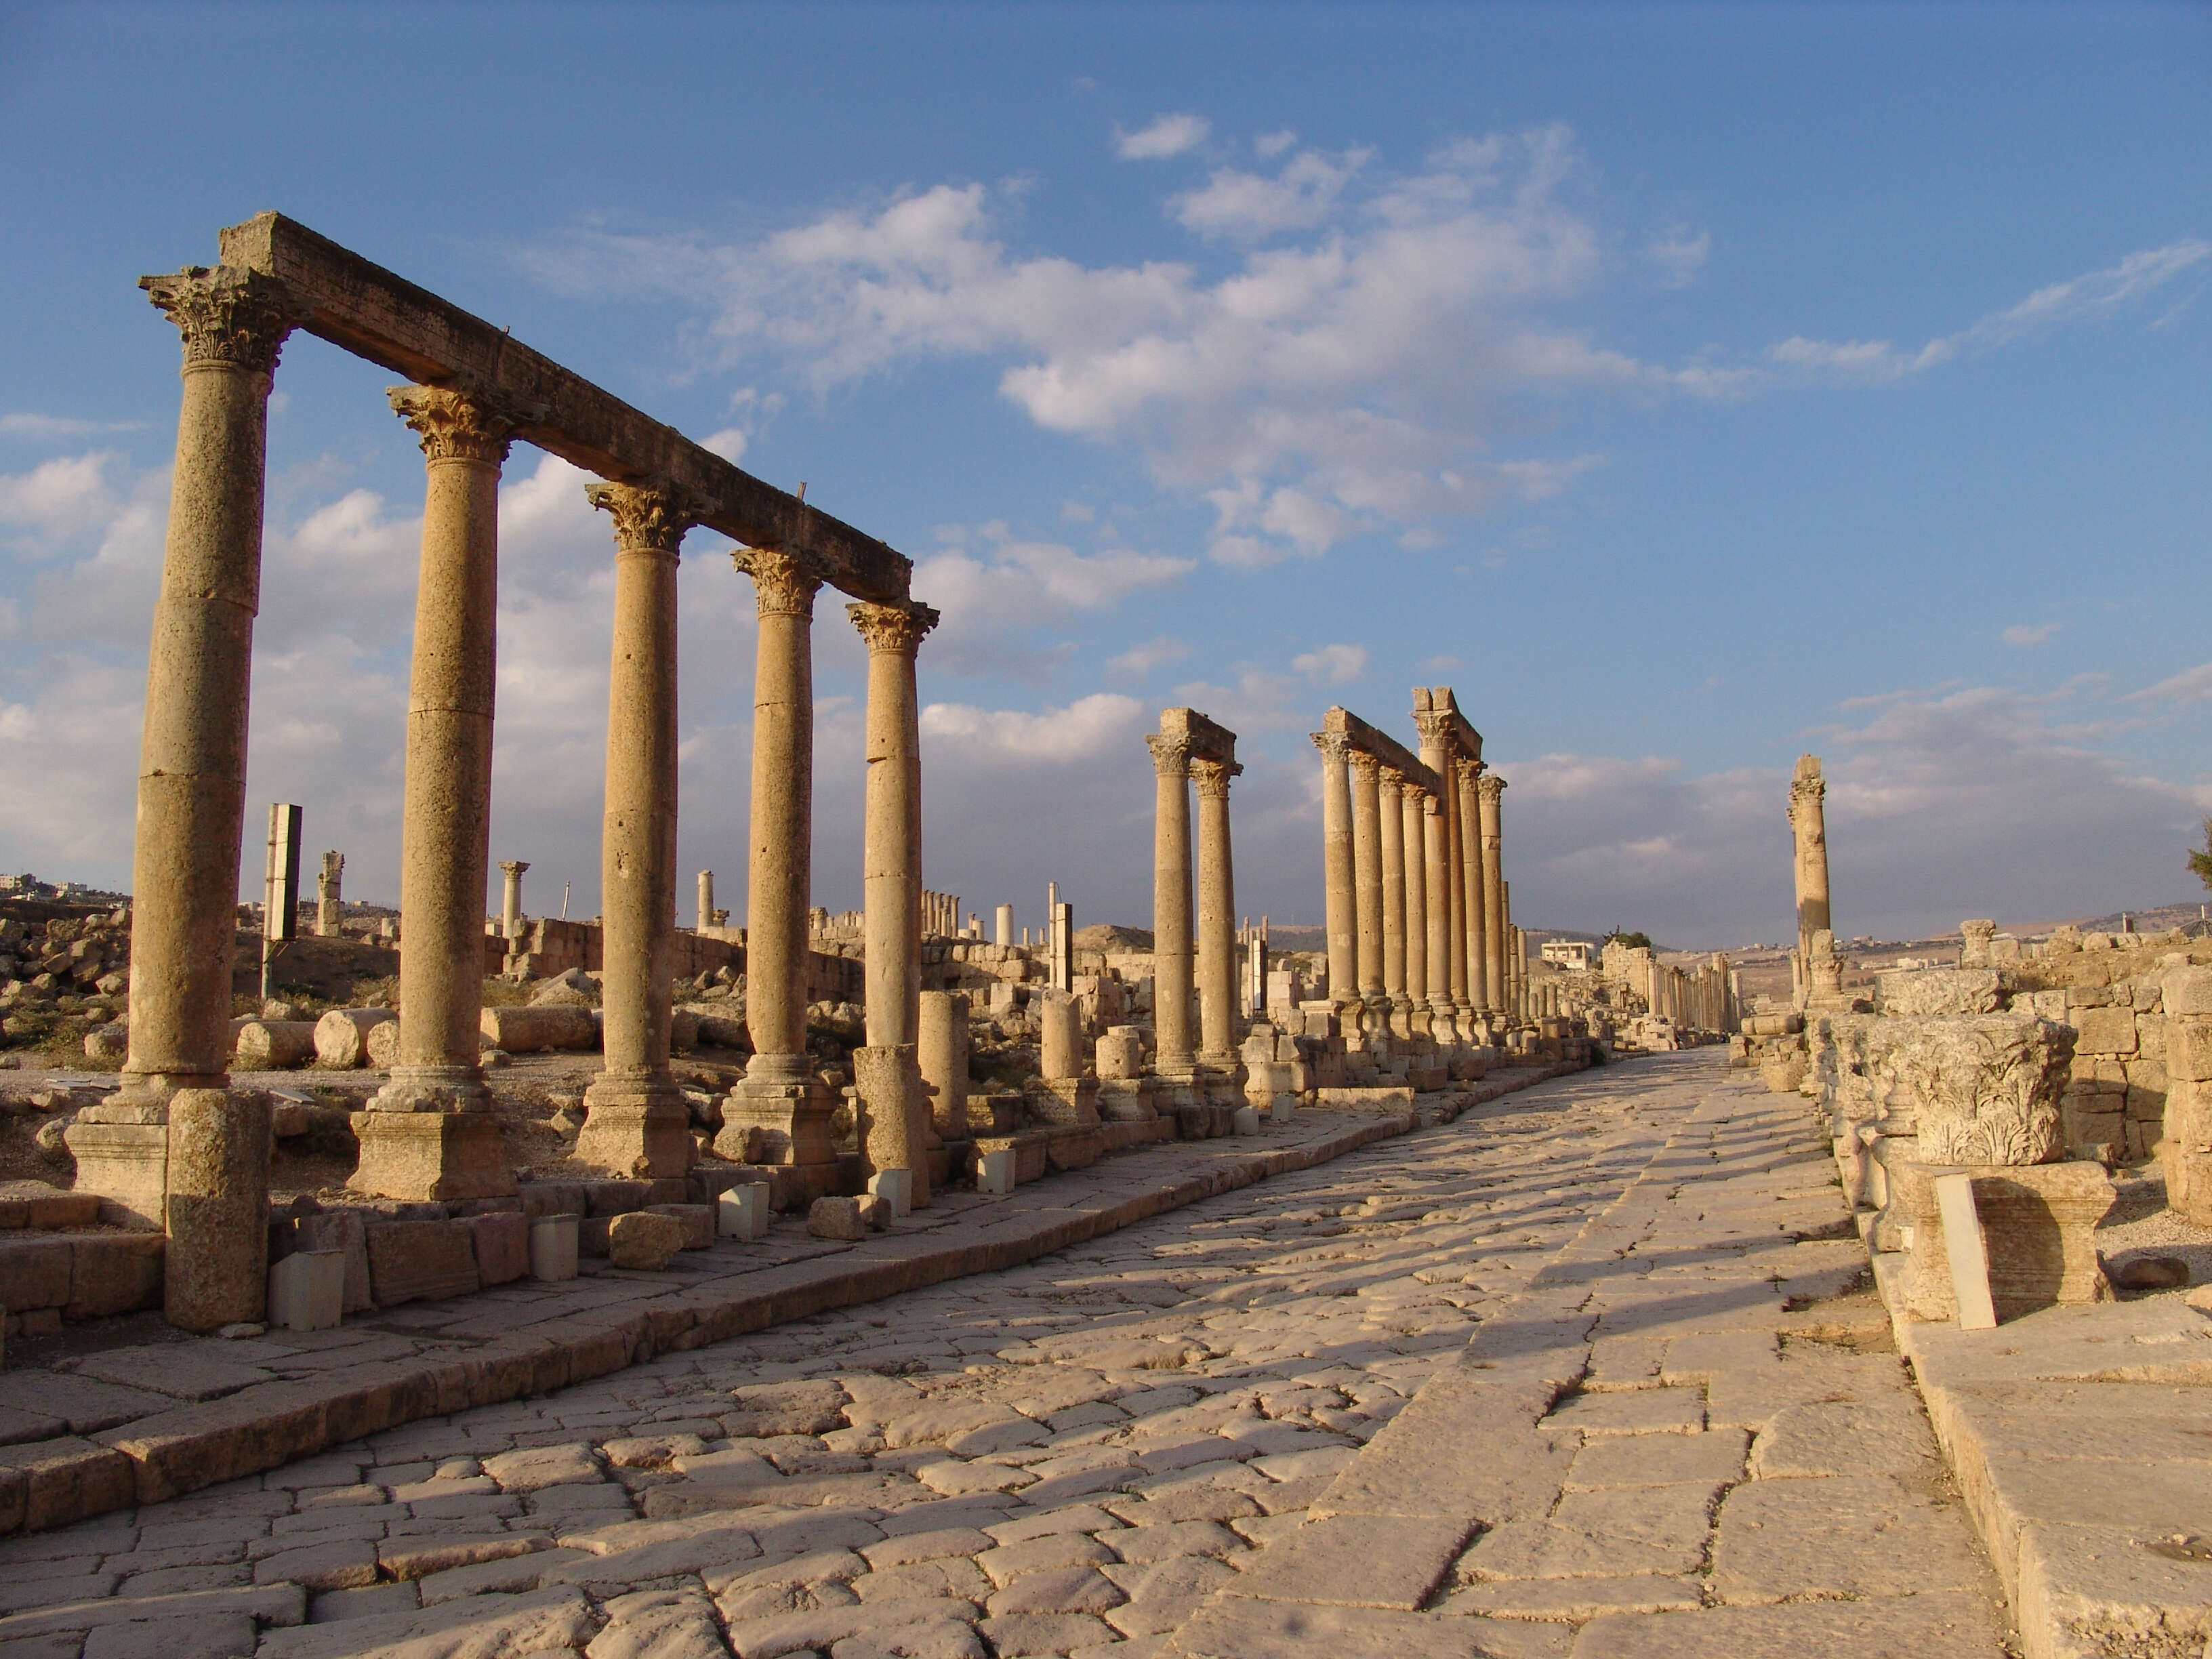 Tuesday, November 12 / Jerash - Gadara - Galilee